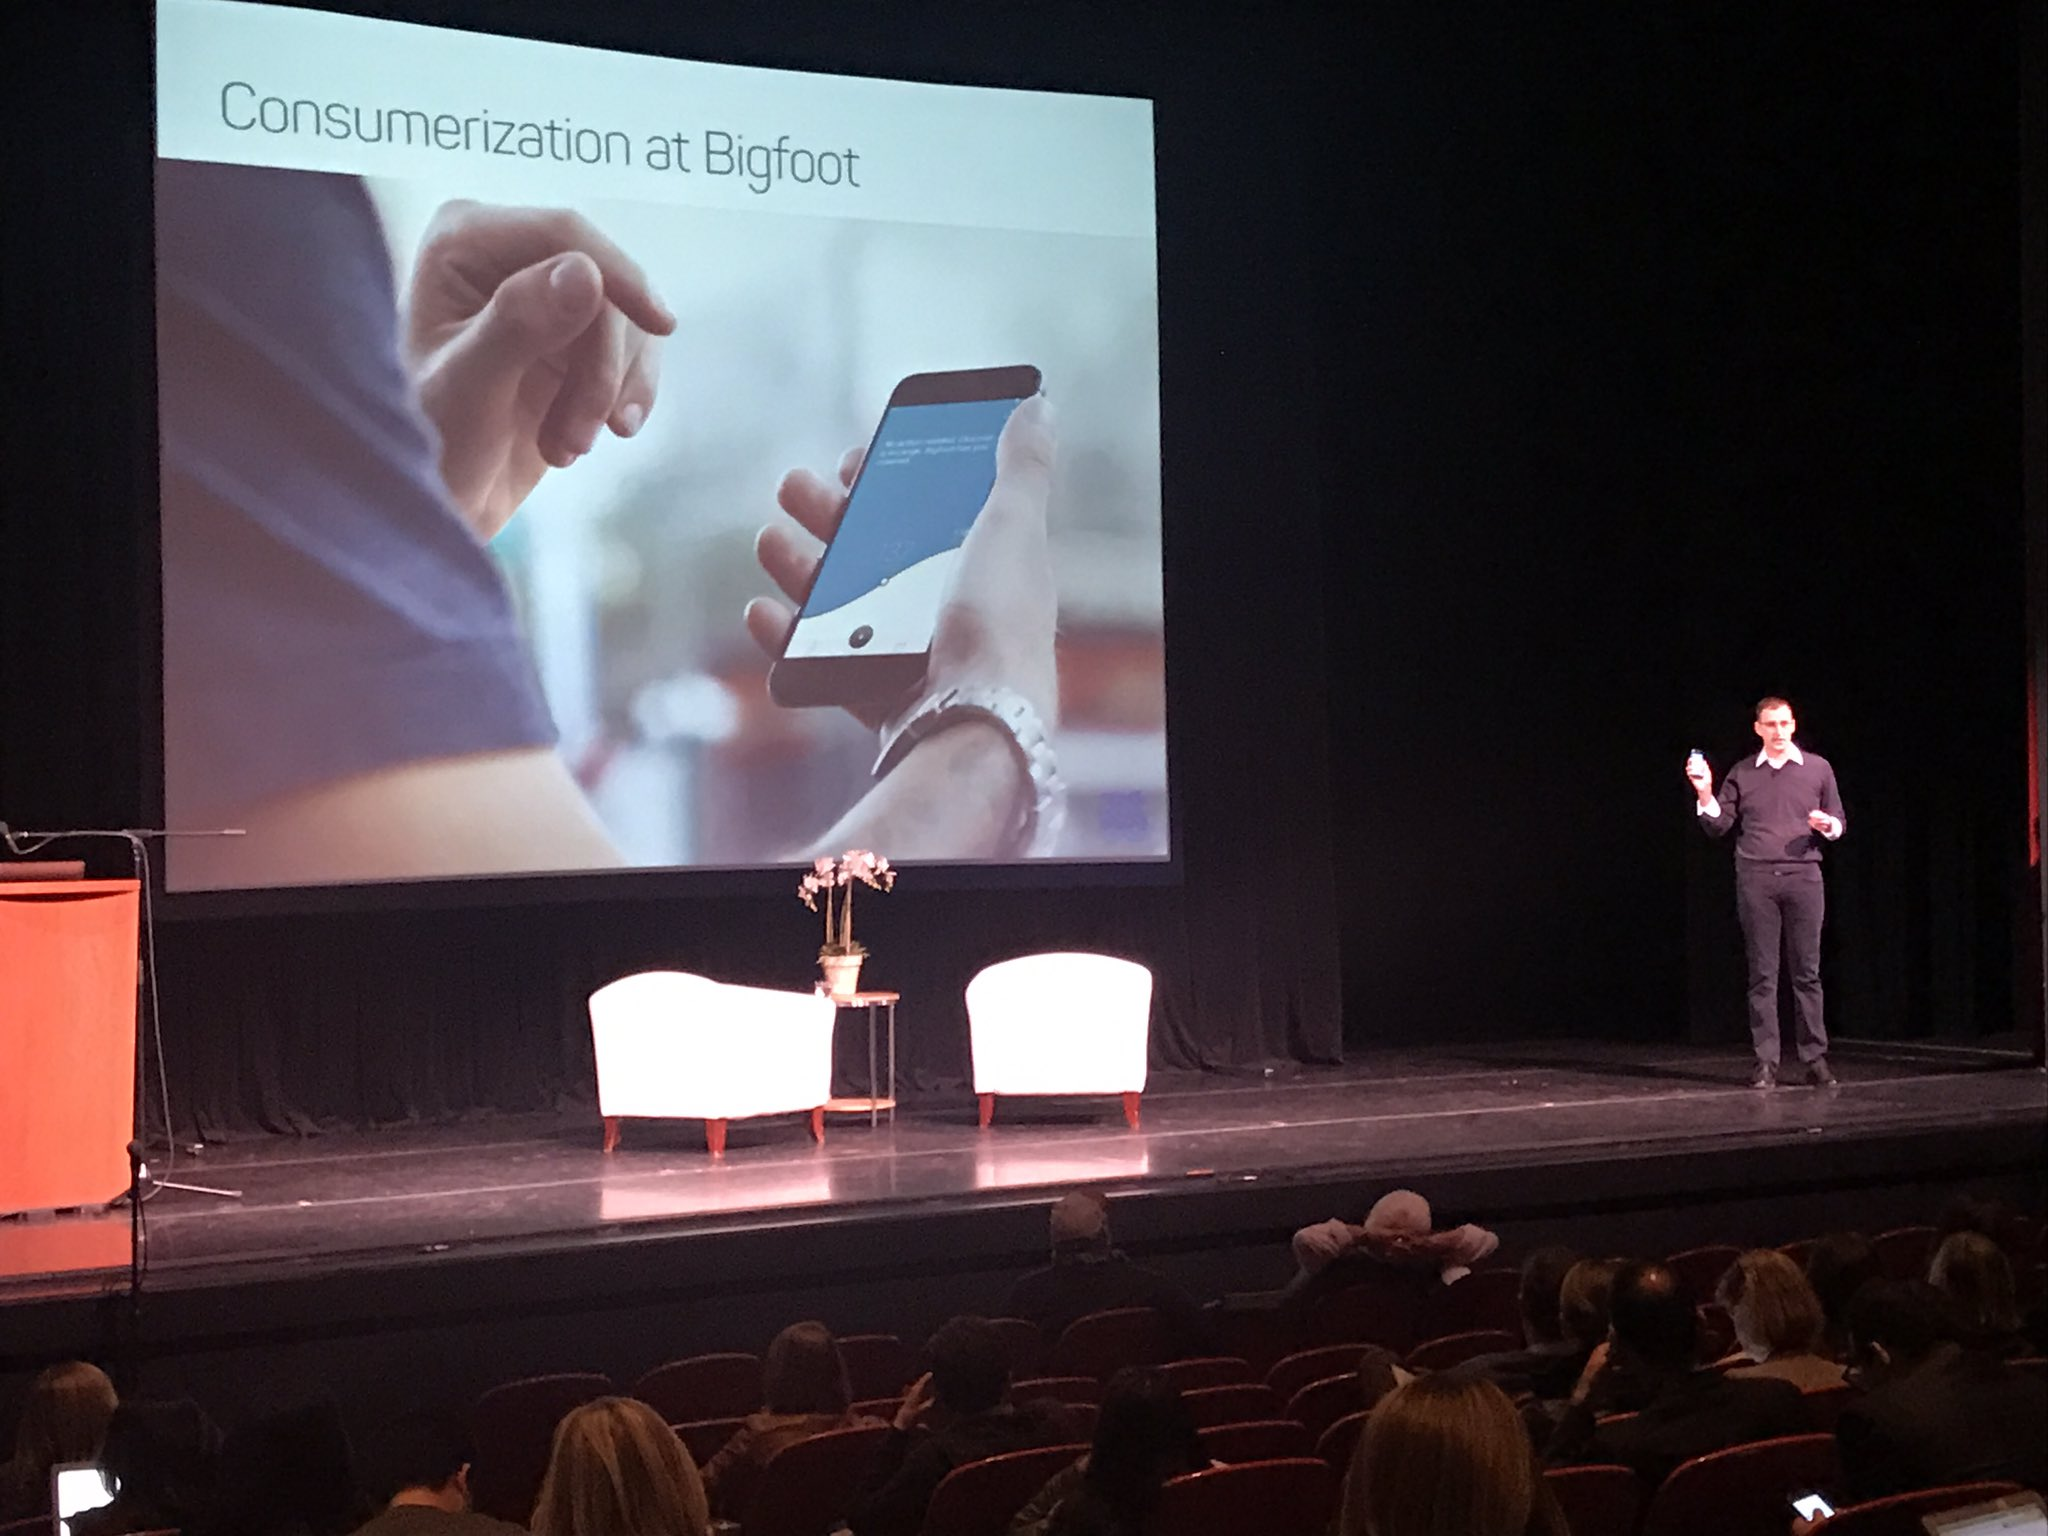 Game changer: Consumer focused Class III med device & service for diabetes. Brave work by Jeff Brewer & @BigfootBiomed #vatorsplashhealth https://t.co/afFk3A0GfH